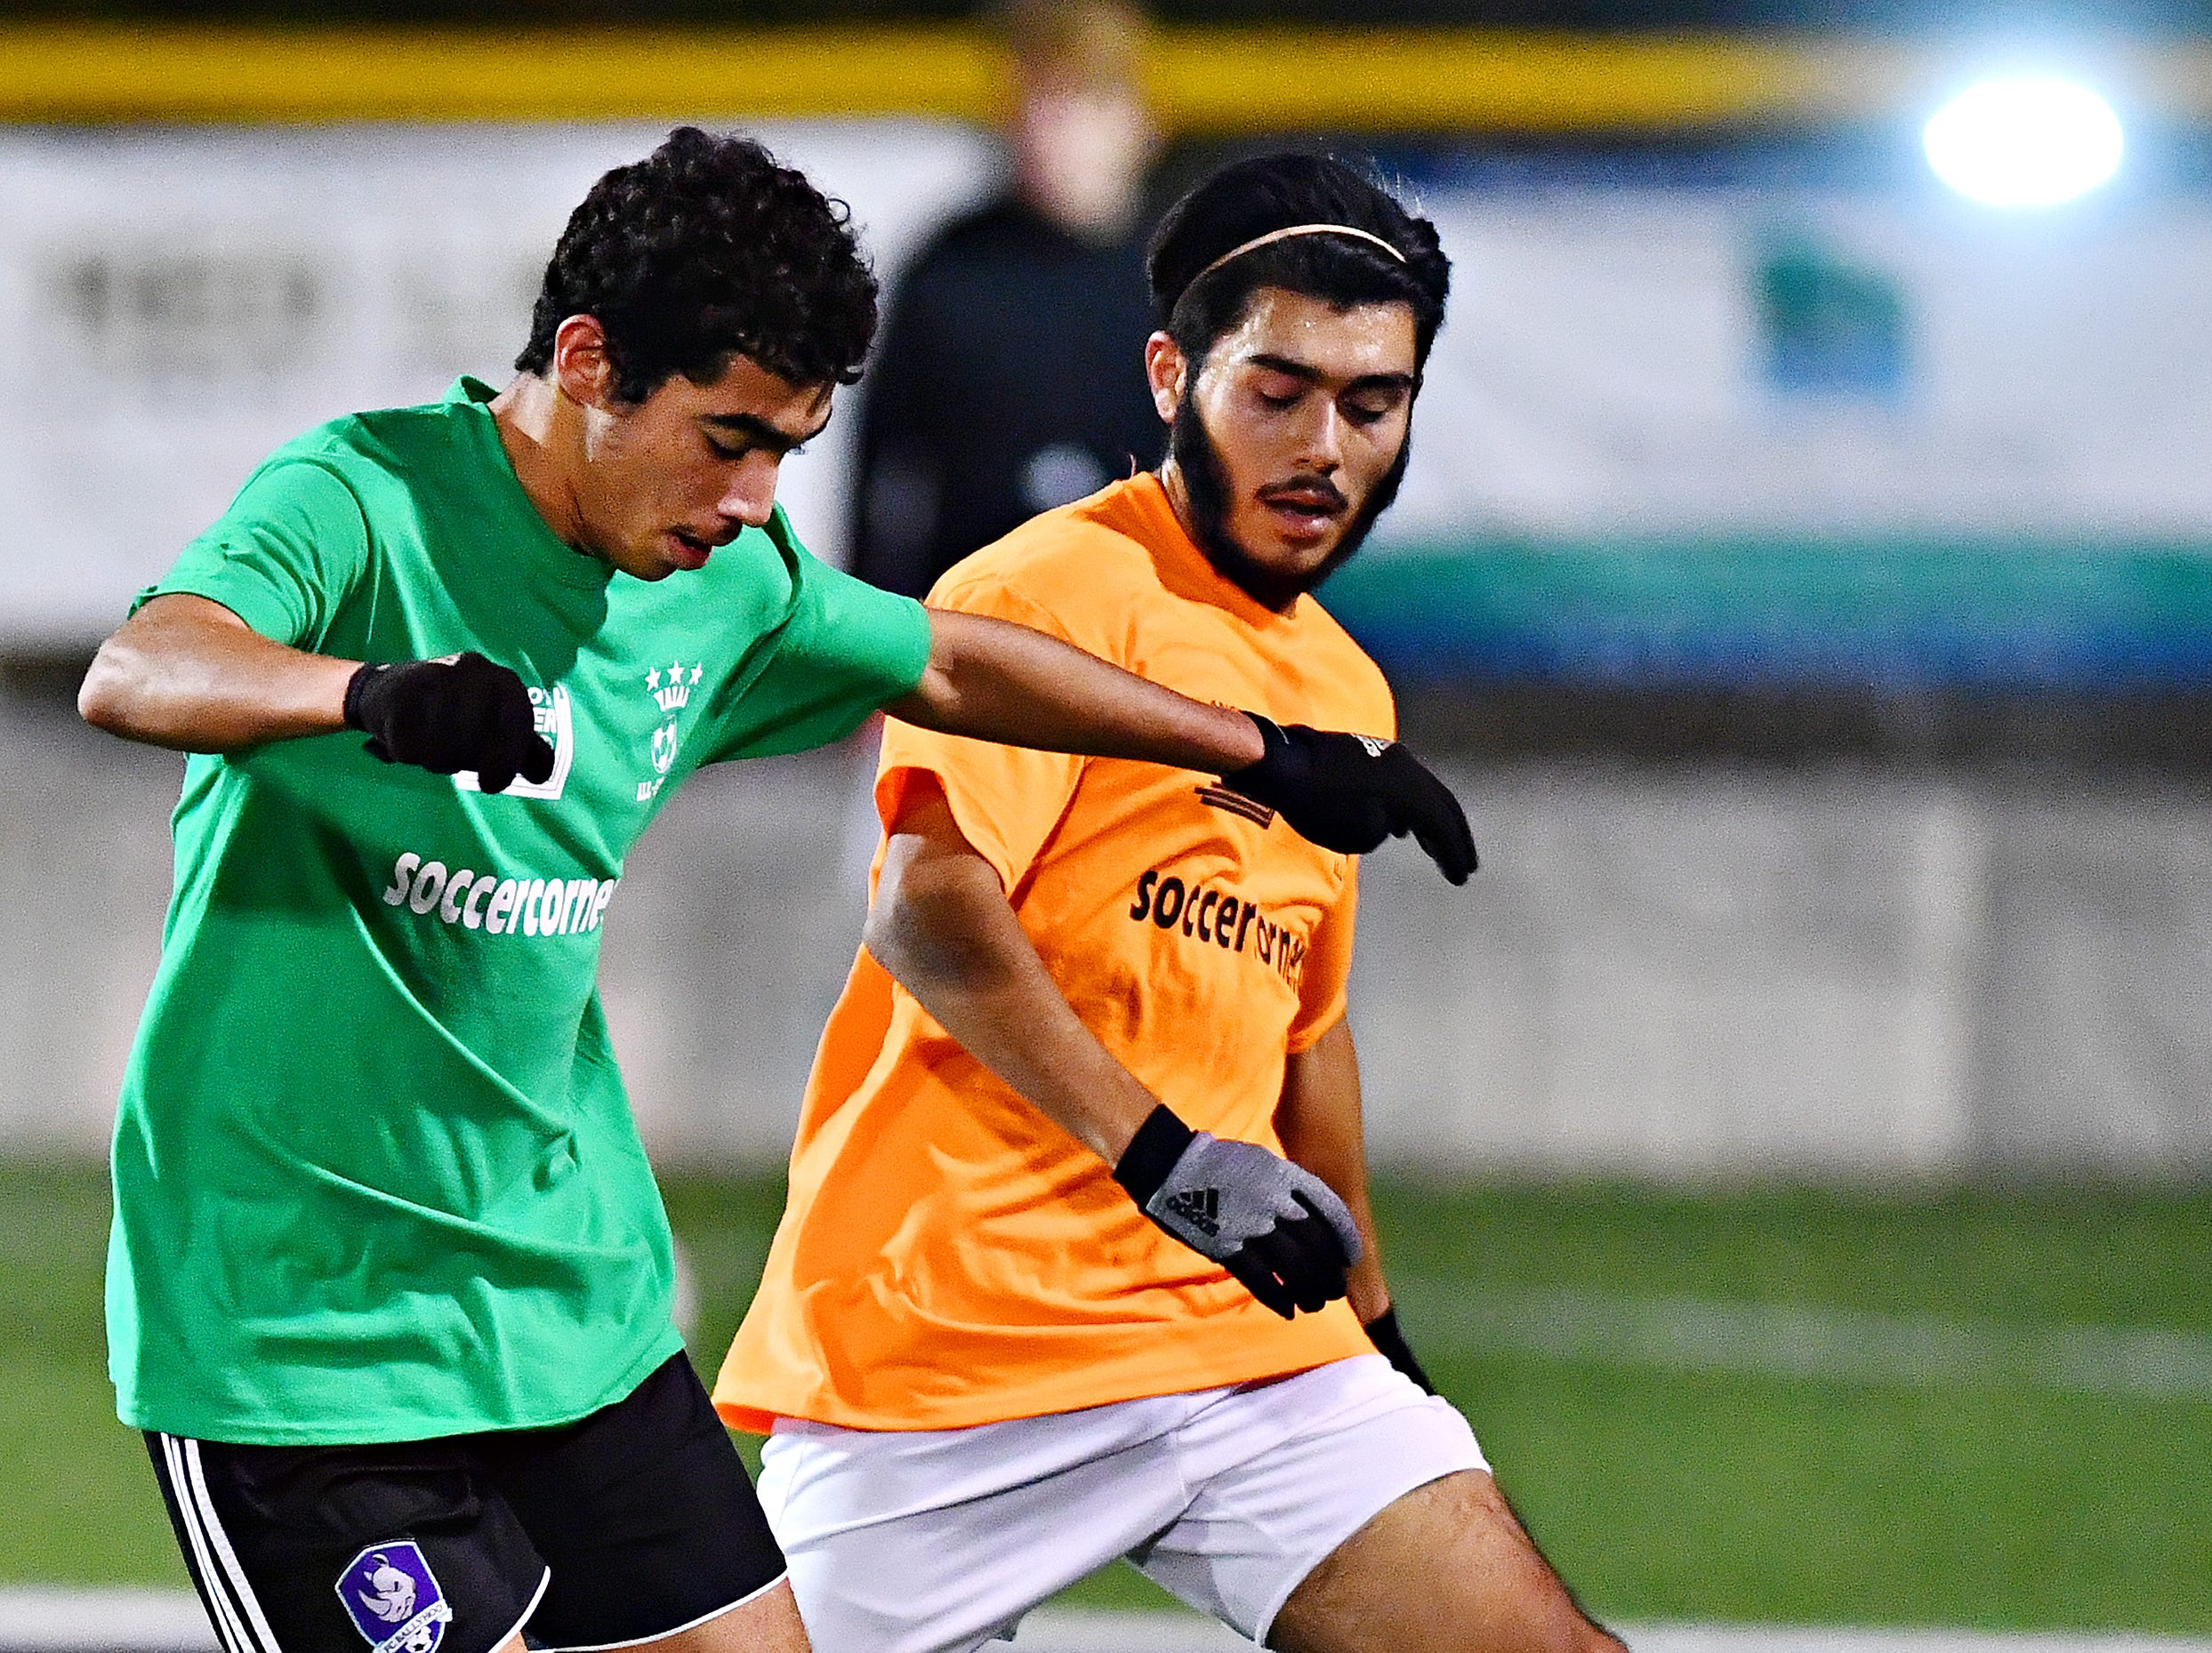 Dallastown's Leo Garcia, left, and Biglerville's Jorge Acevado battle for control of the ball during the YAIAA Boys' Soccer Senior All Star Game action at Horn Field in Red Lion, Wednesday, Nov. 7, 2018. Dawn J. Sagert photo